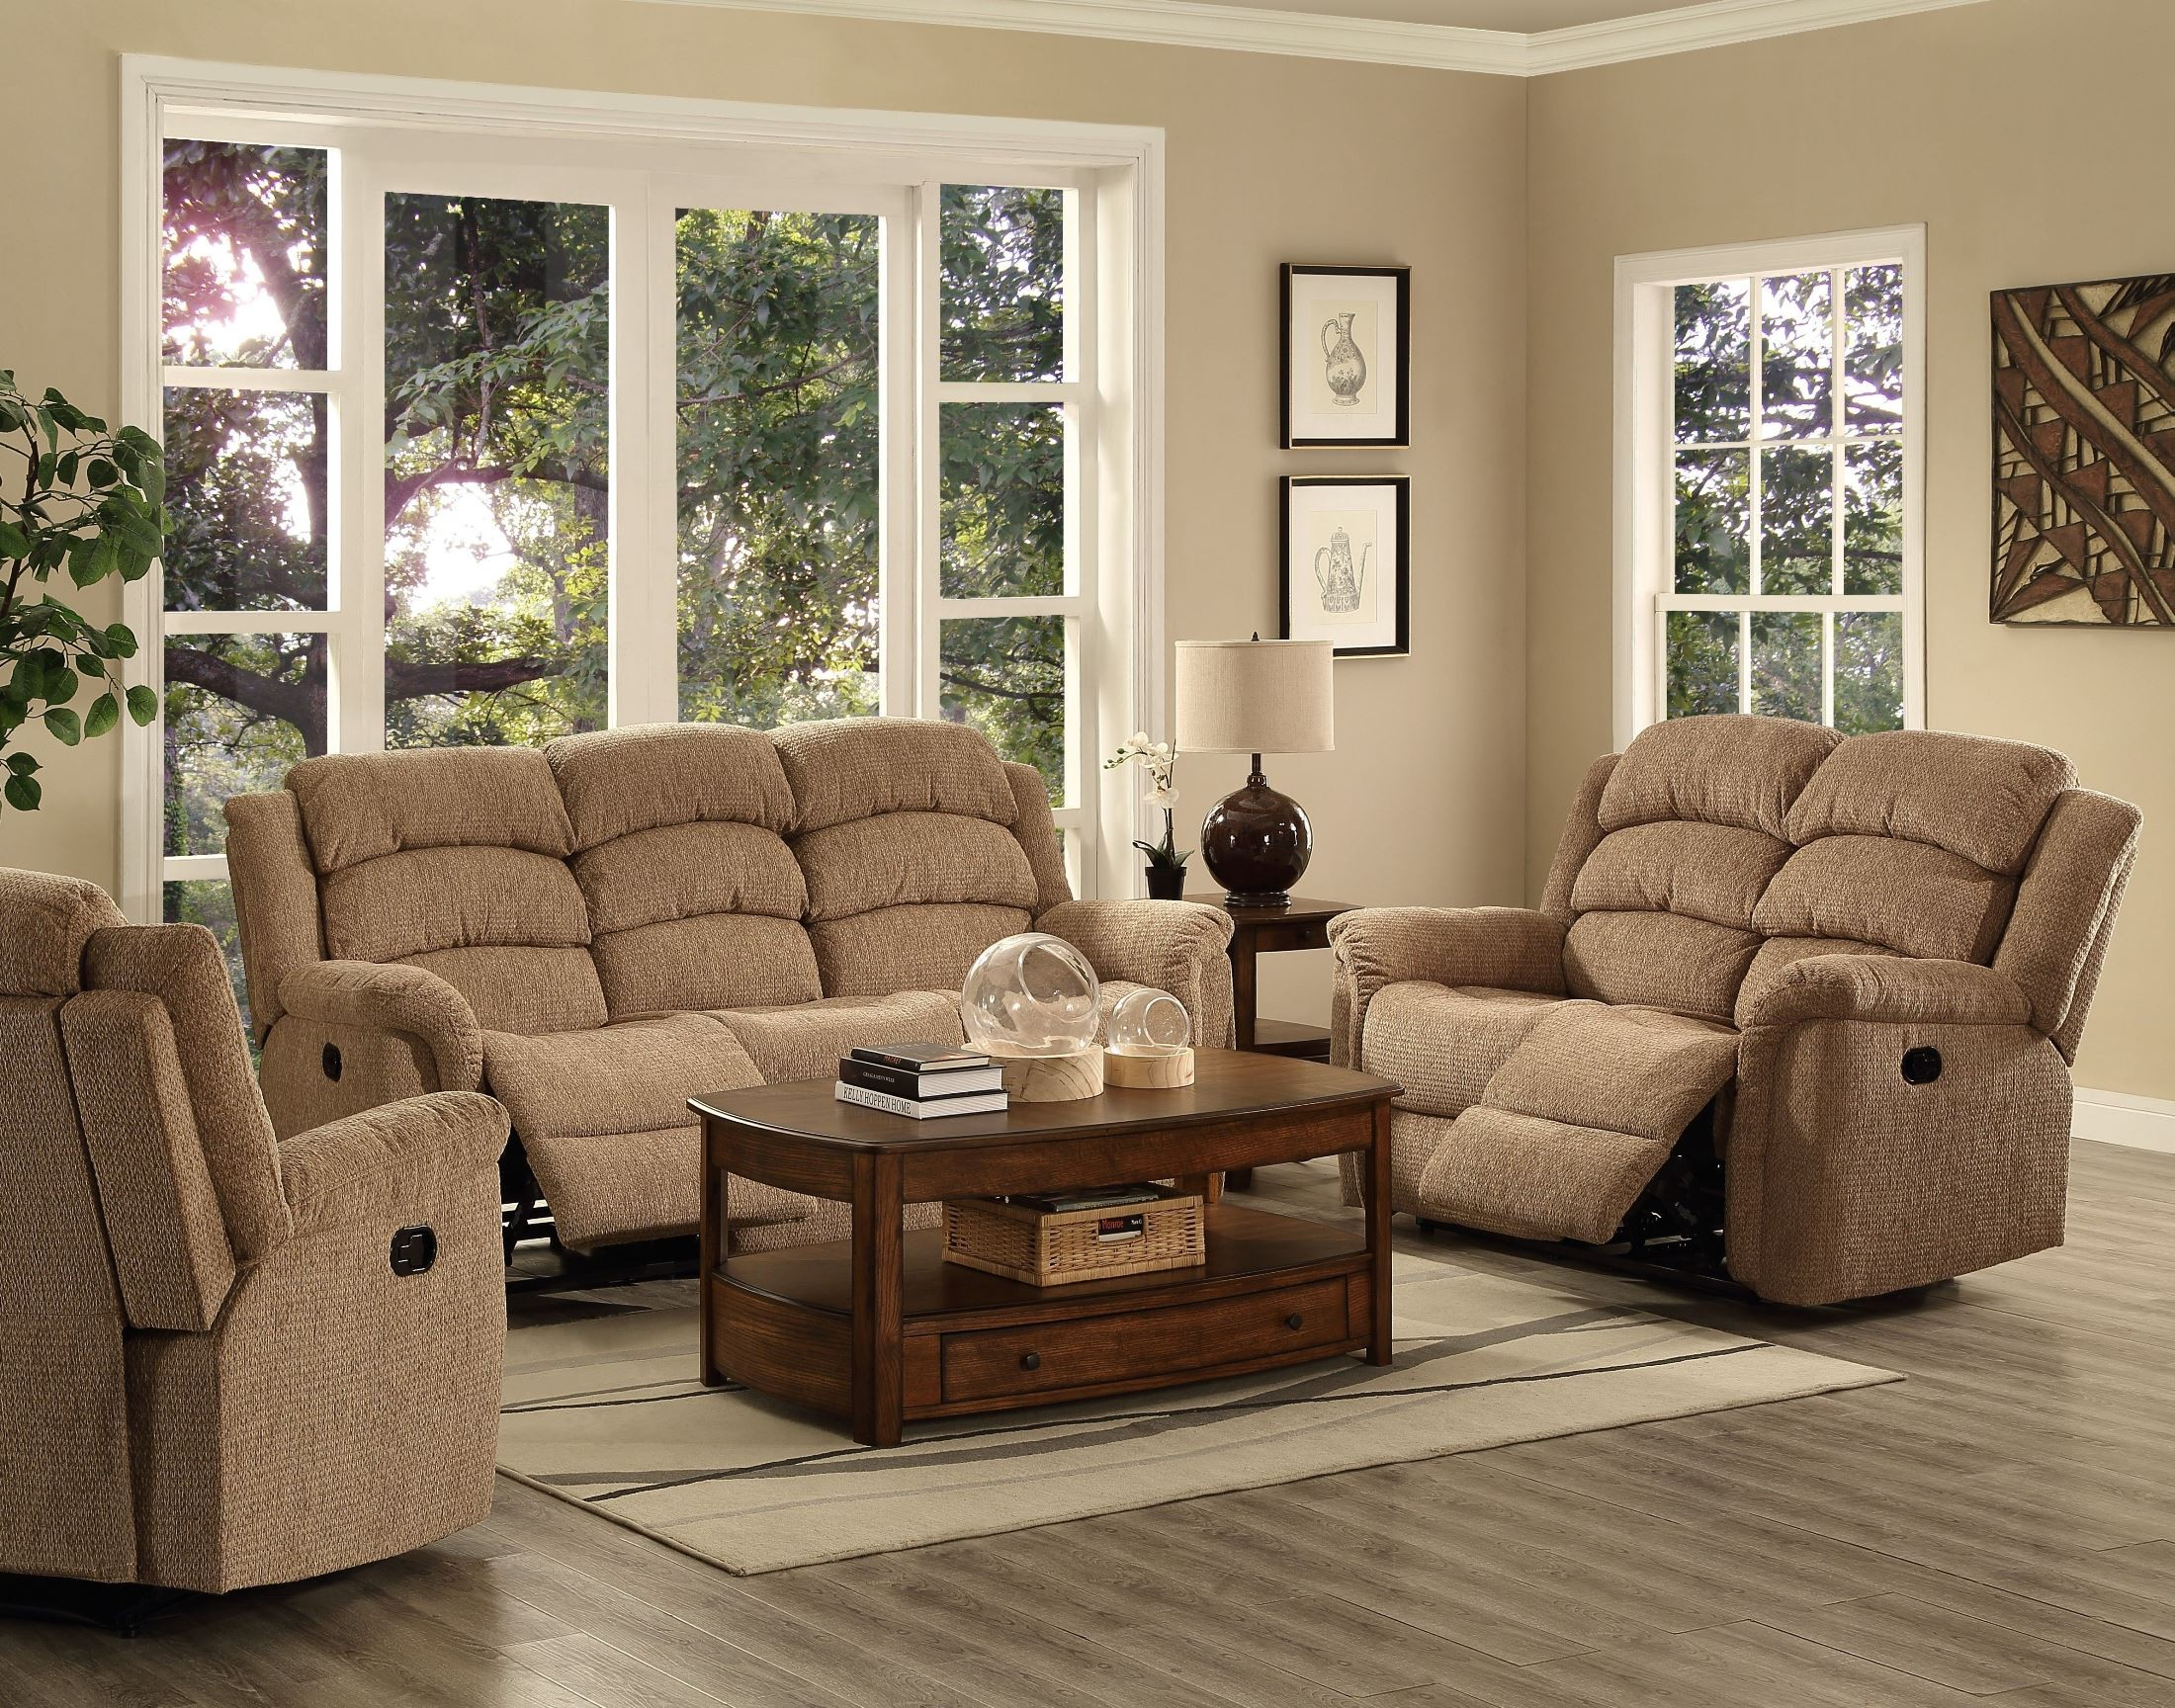 Ross taupe dual reclining living room set from new for Classic taupe living room